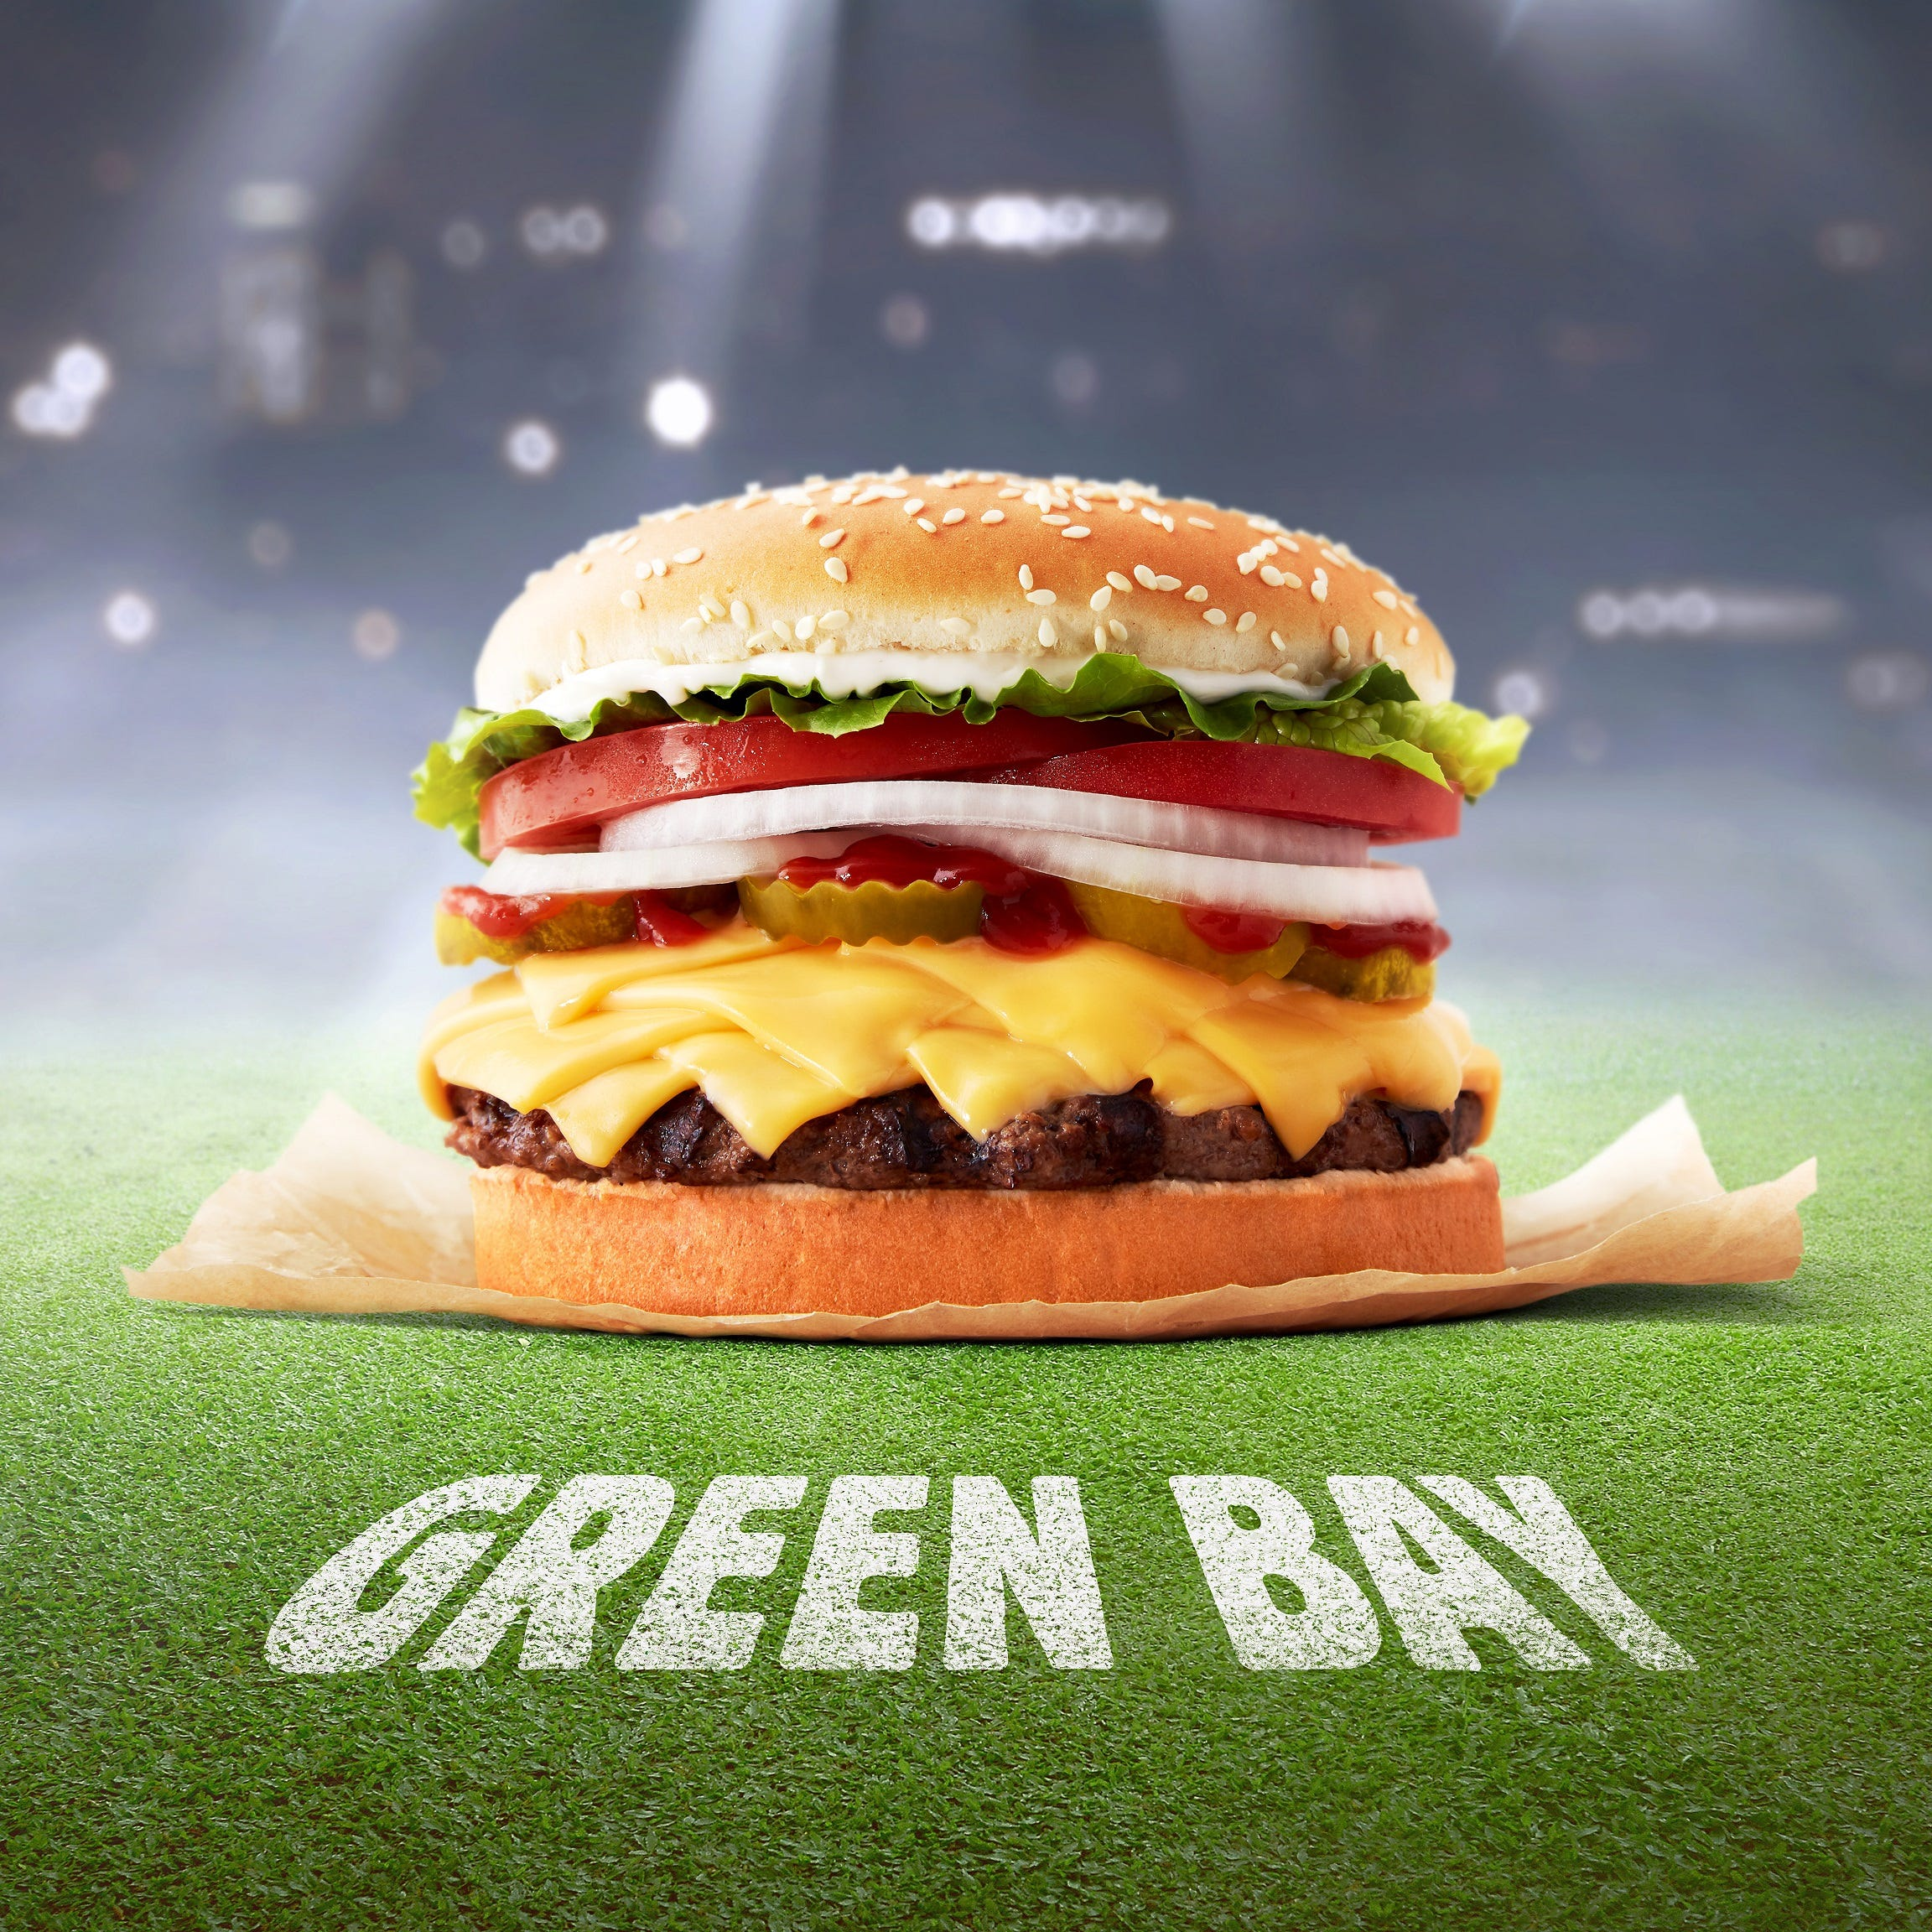 Burger King is making a Green Bay Whopper that features (you guessed it) extra cheese